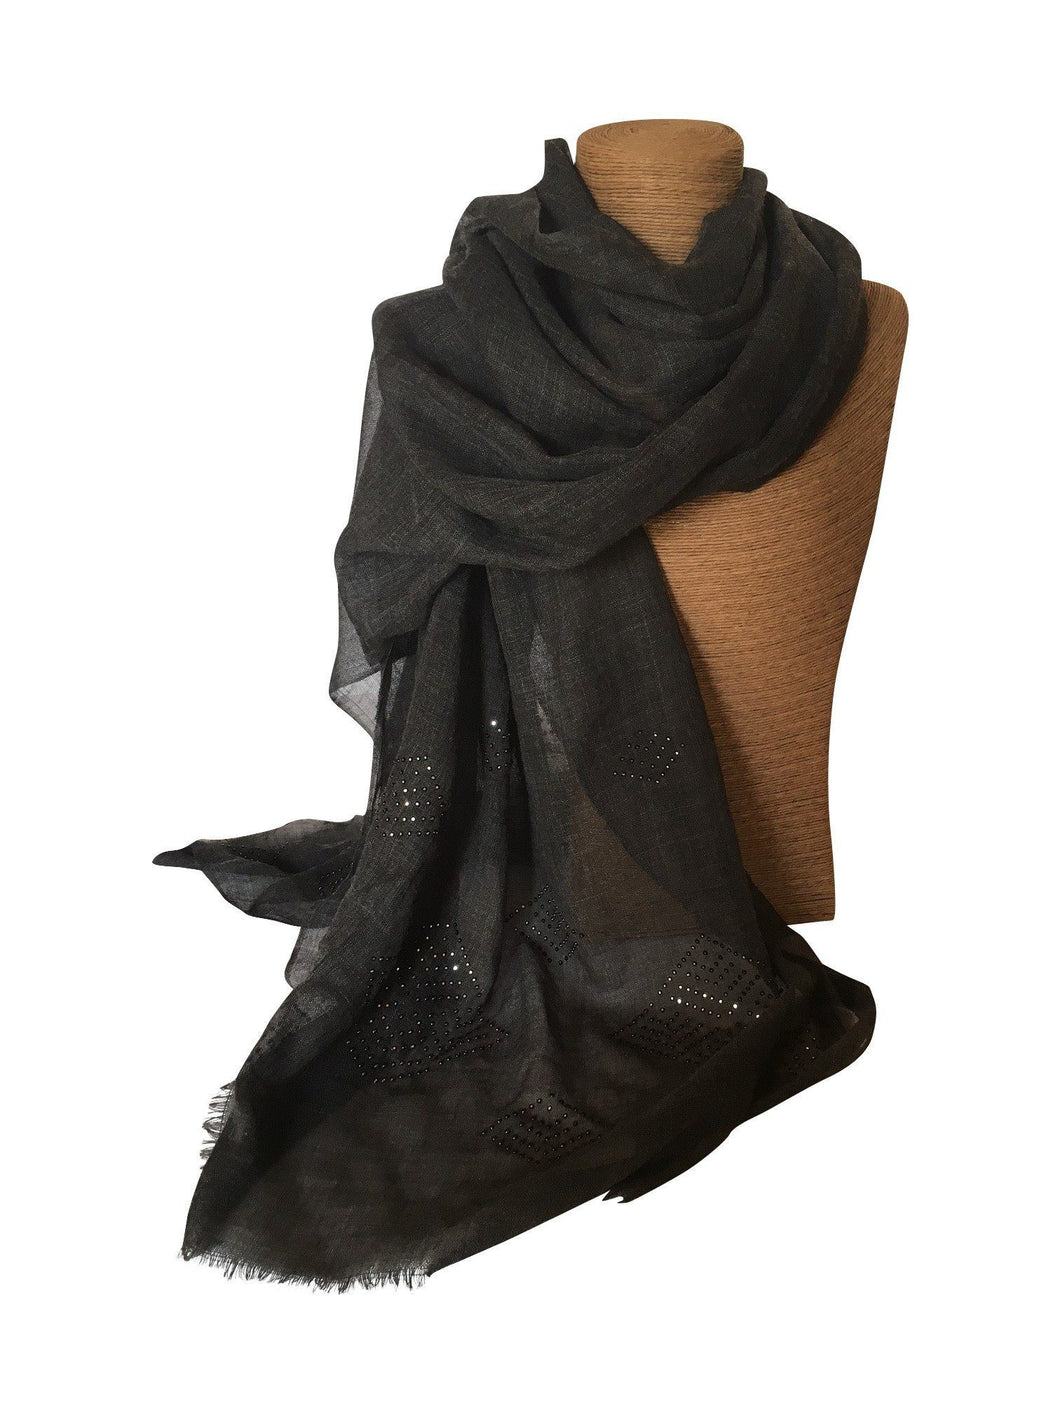 Wool Silk Charcoal Wrap with Swarovski Crystals